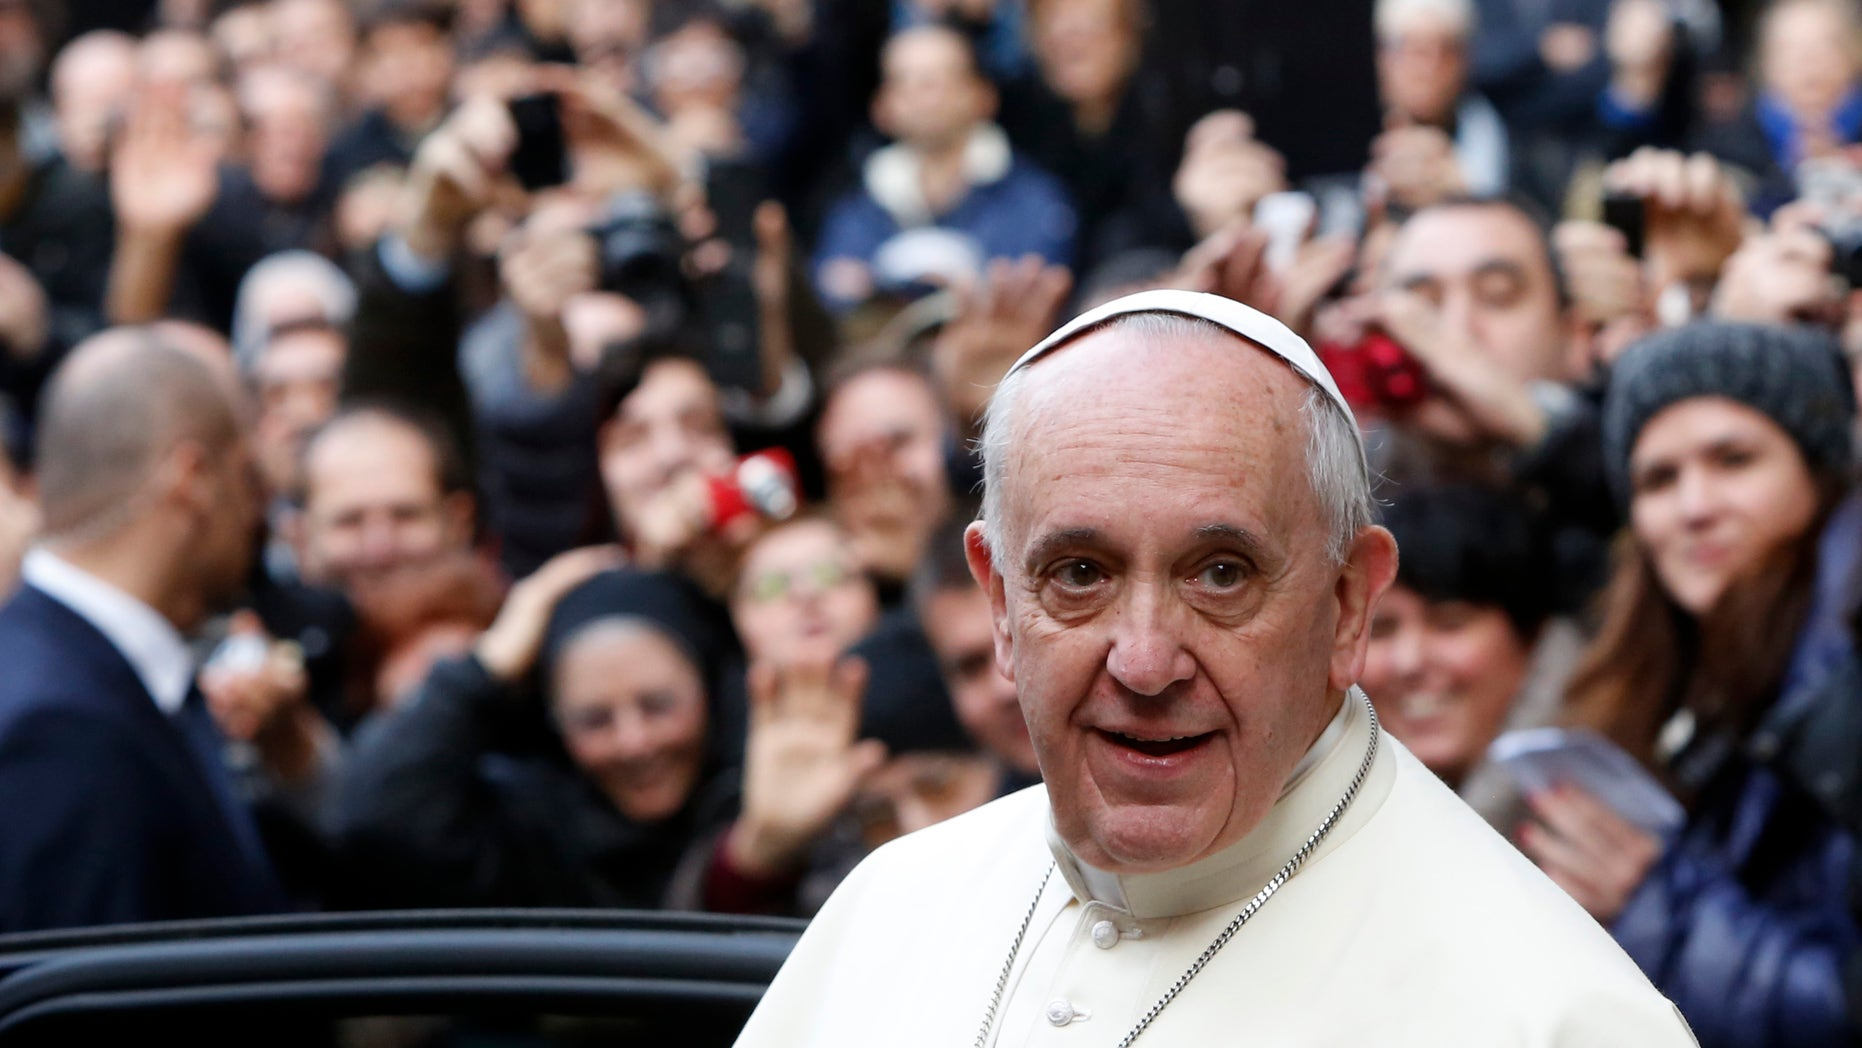 Pope Francis leaves Rome's Jesus' Church after celebrating a mass with the Jesuits, on the occasion of the order's titular feast, Friday, Jan. 3, 2014. (AP Photo/Riccardo De Luca)